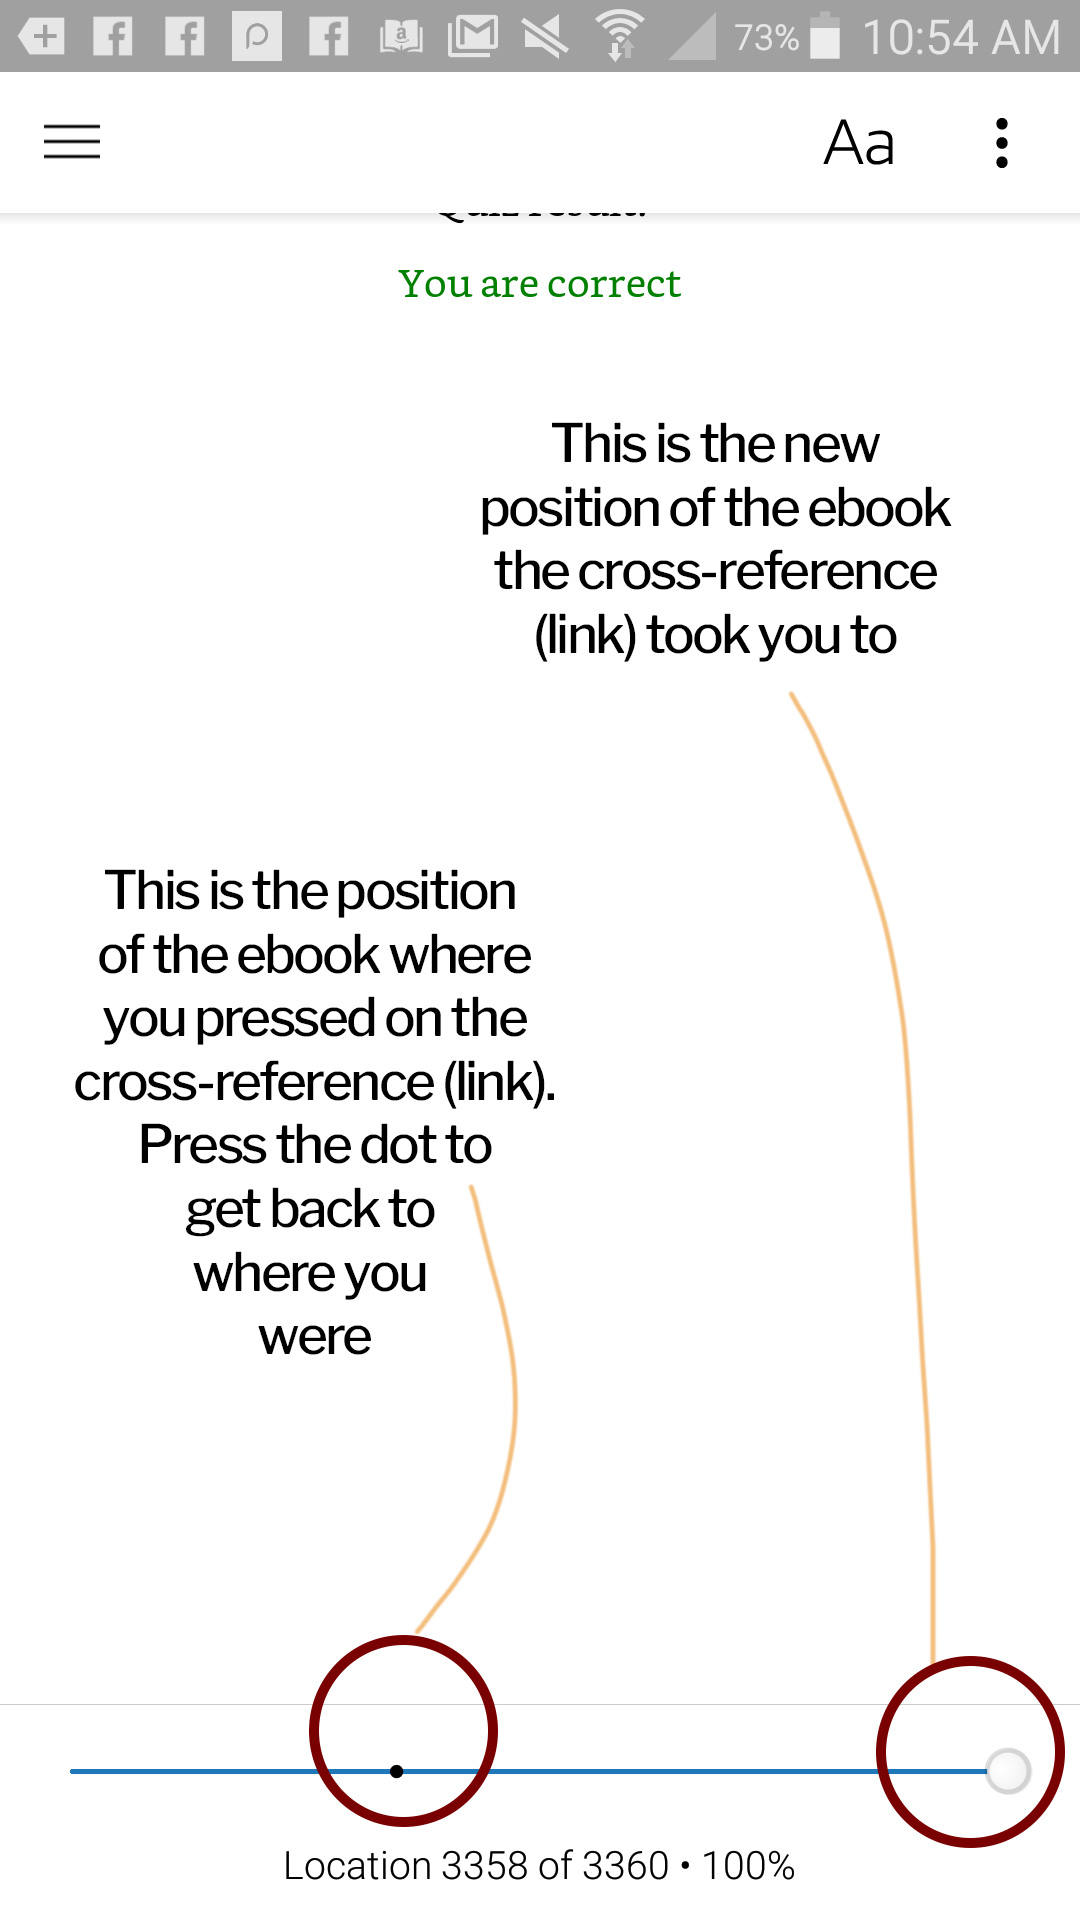 cross references and back links in ebooks